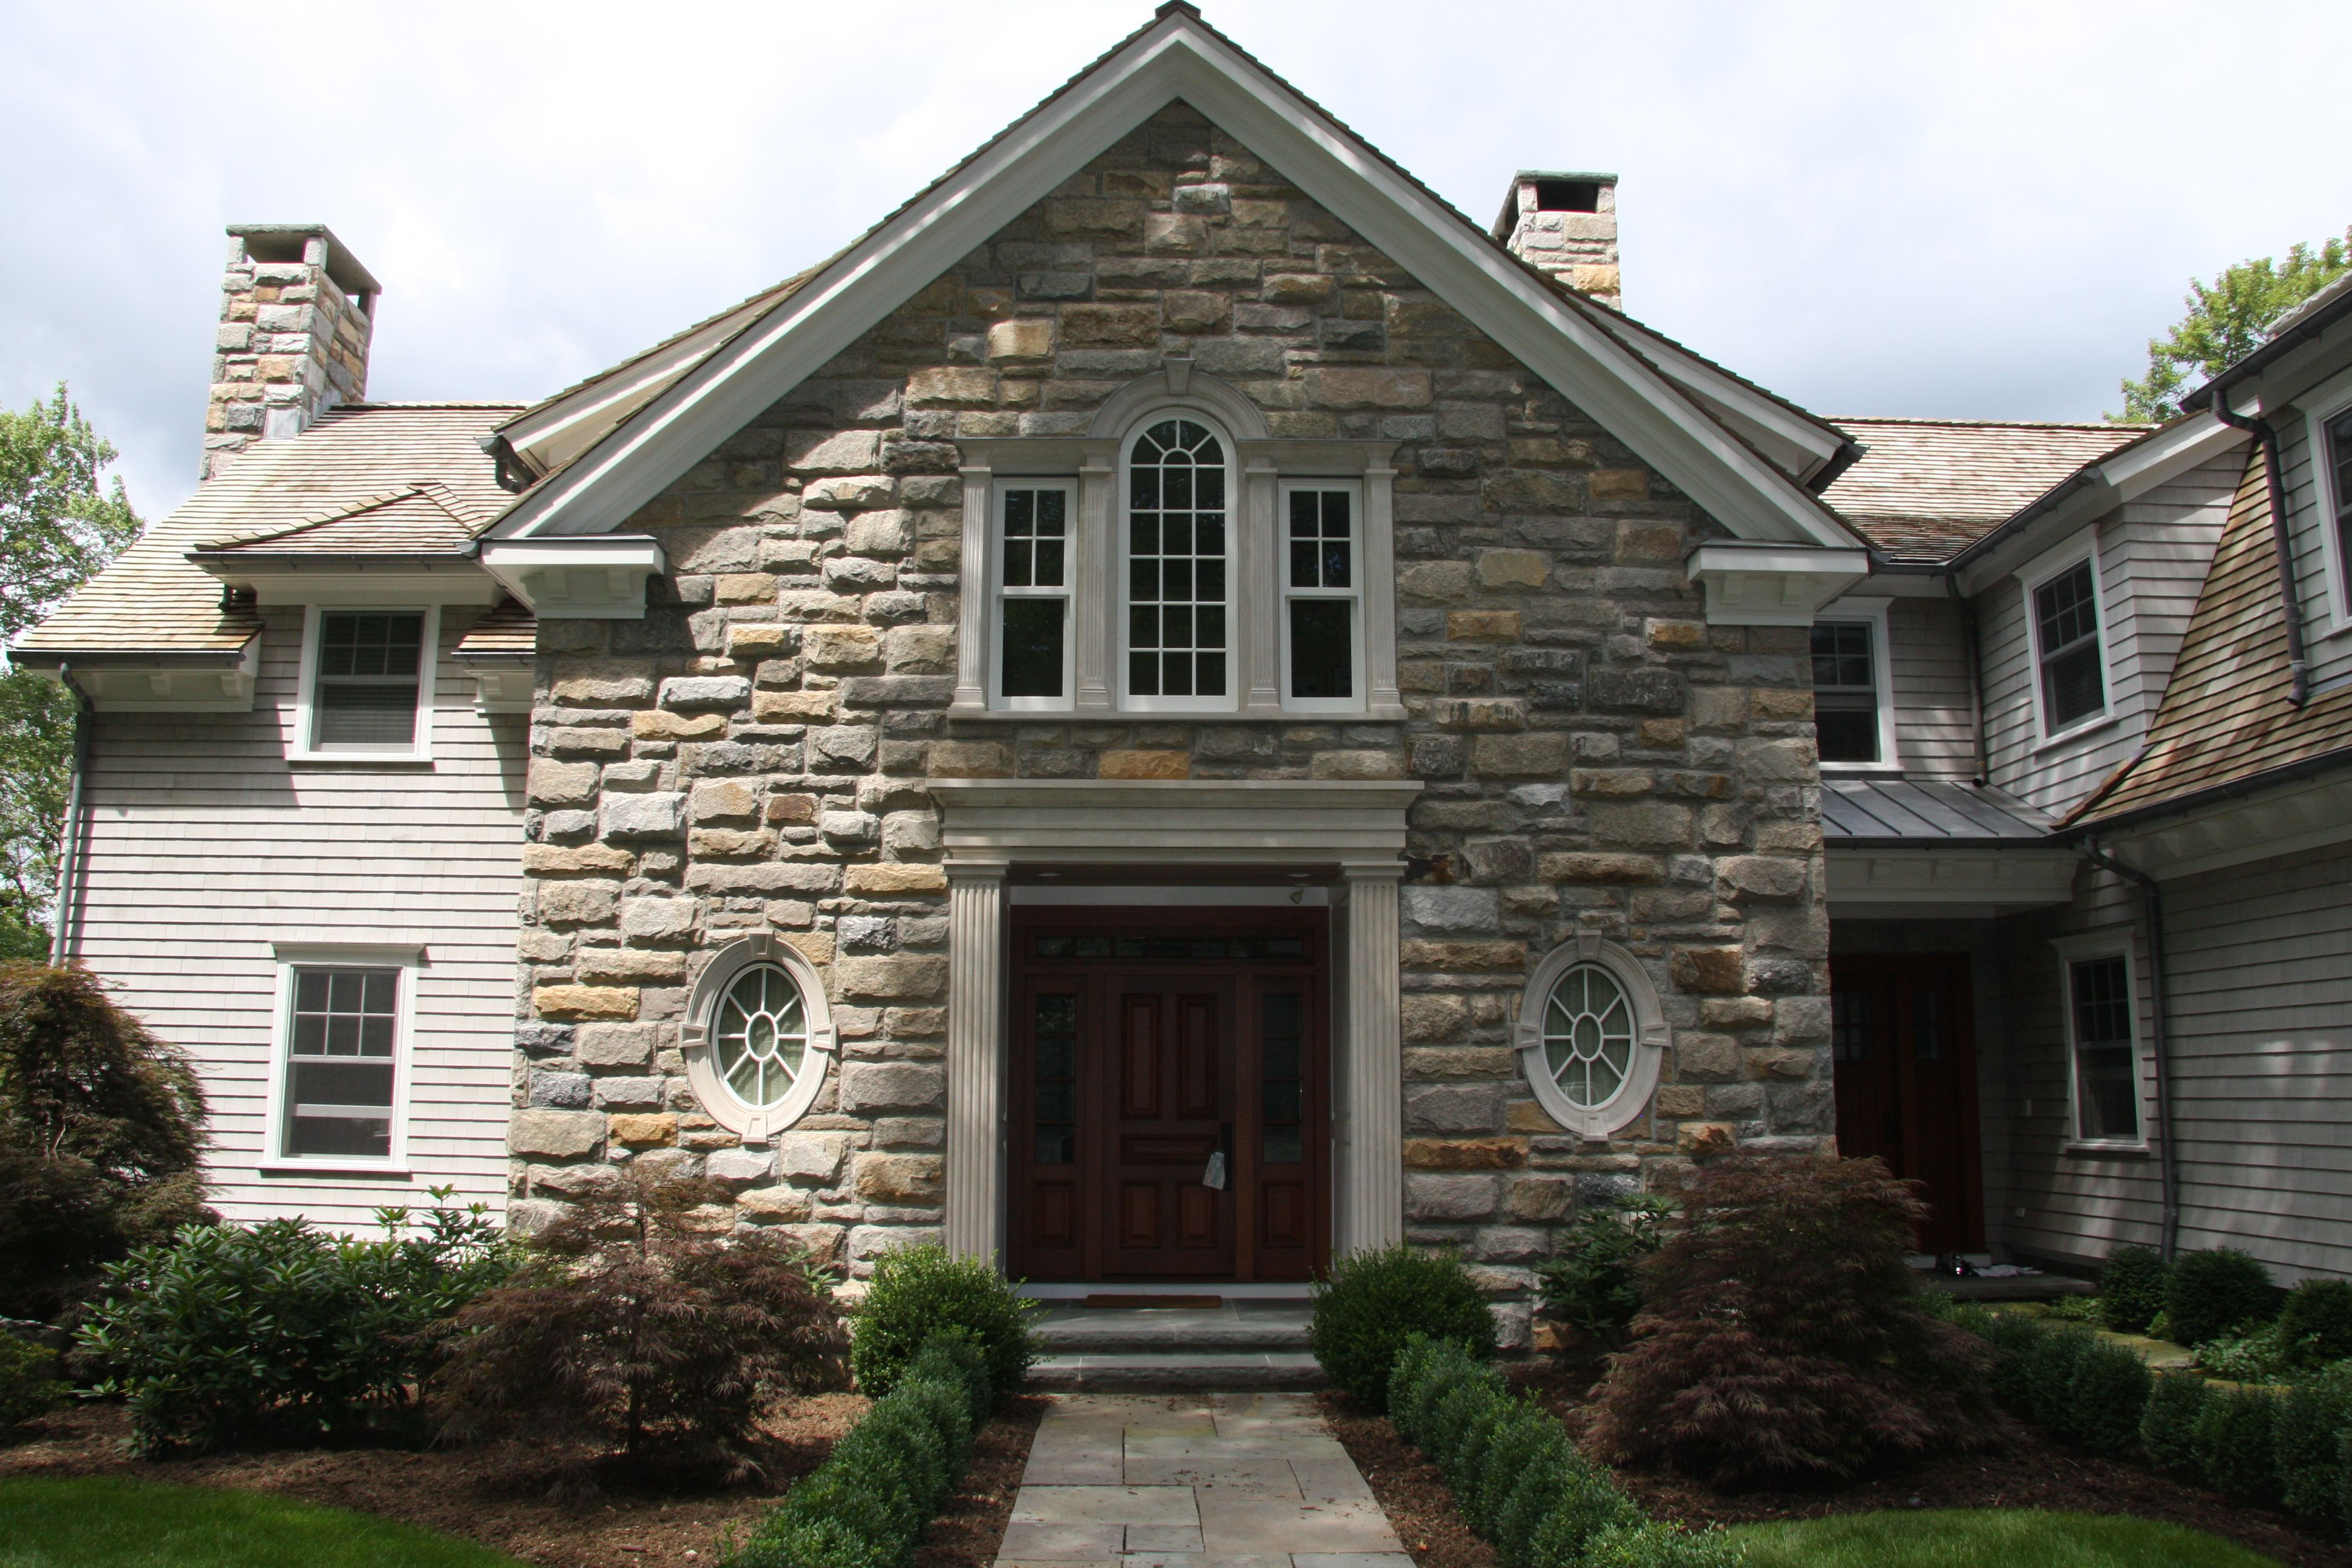 Awesome The Exterior Of The House, Which Is Given By The Decoration Stone Veneer,  Has